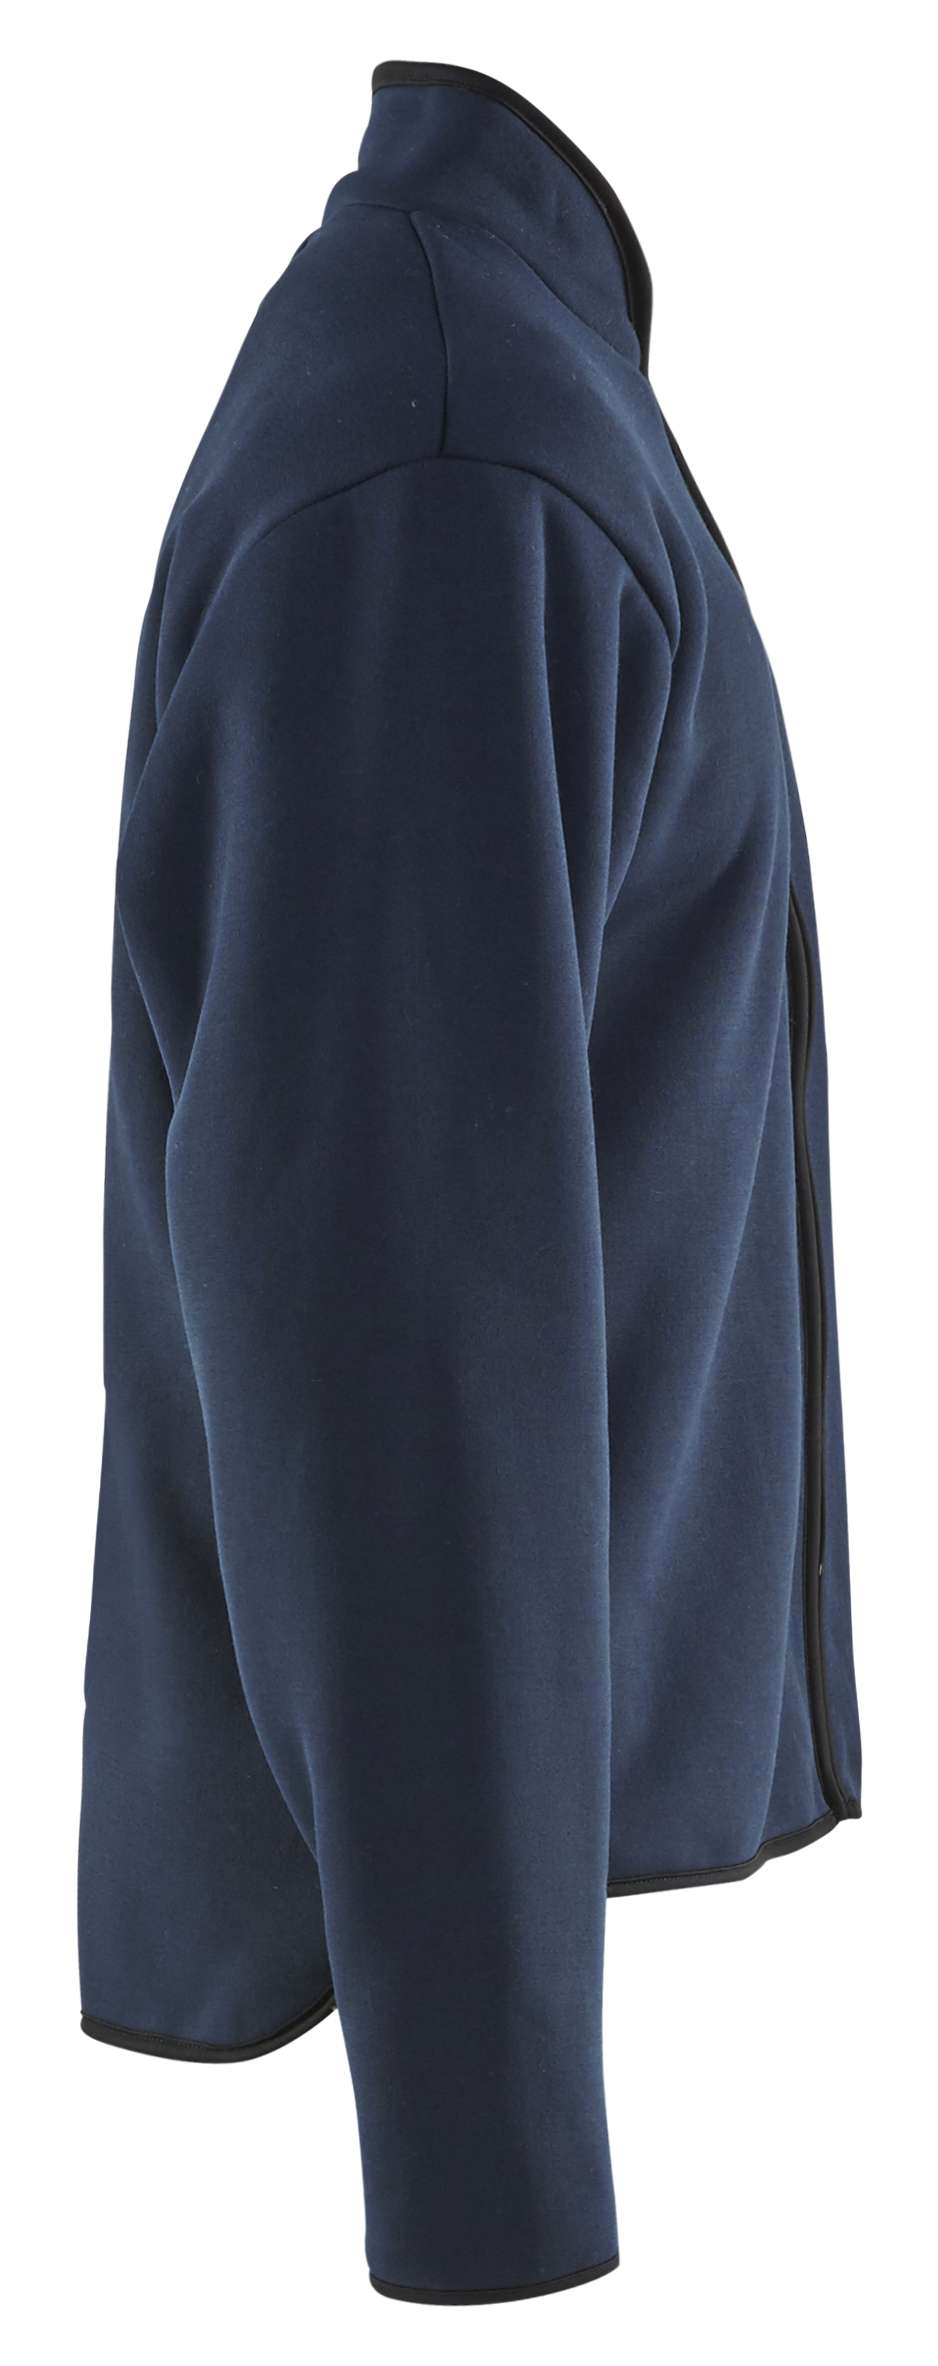 Blaklader Fleece vesten 47702954 marineblauw(8900)